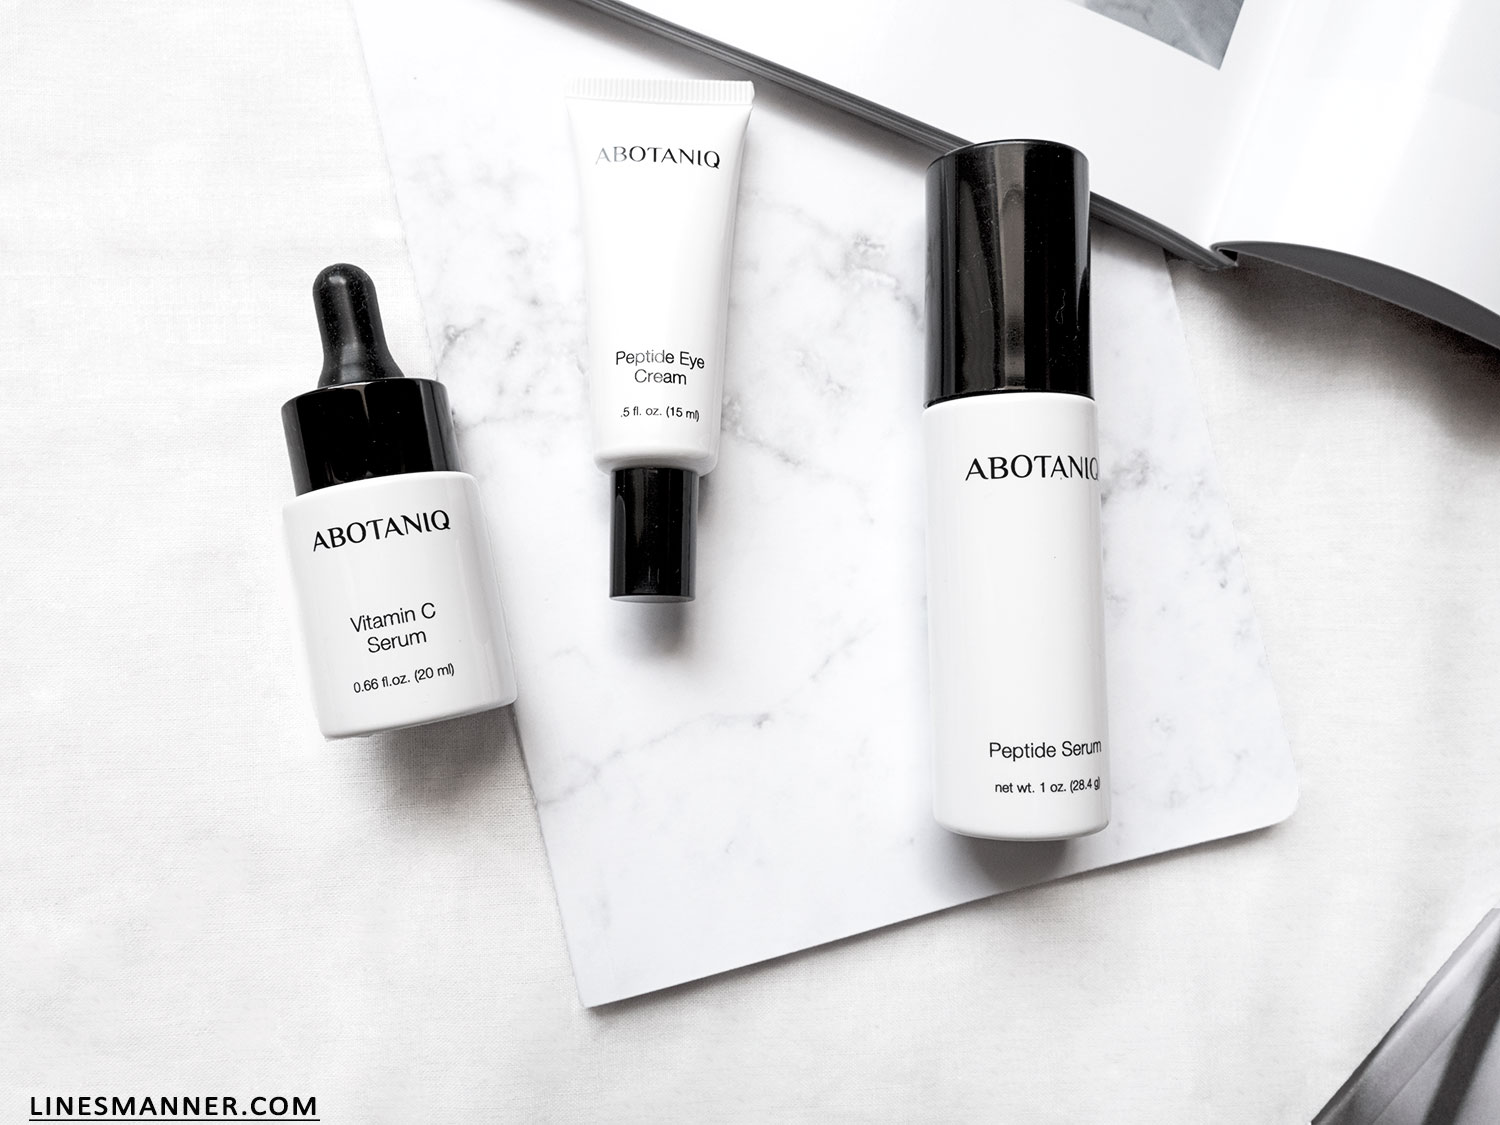 Lines-Manner-Abotaniq-Skin_Care-Natural-Science-Technology-Beauty-Quality-Authentic-Skins-Peptides-Antioxidant-Fresh-Black_and_White-Essentials-Expert-2